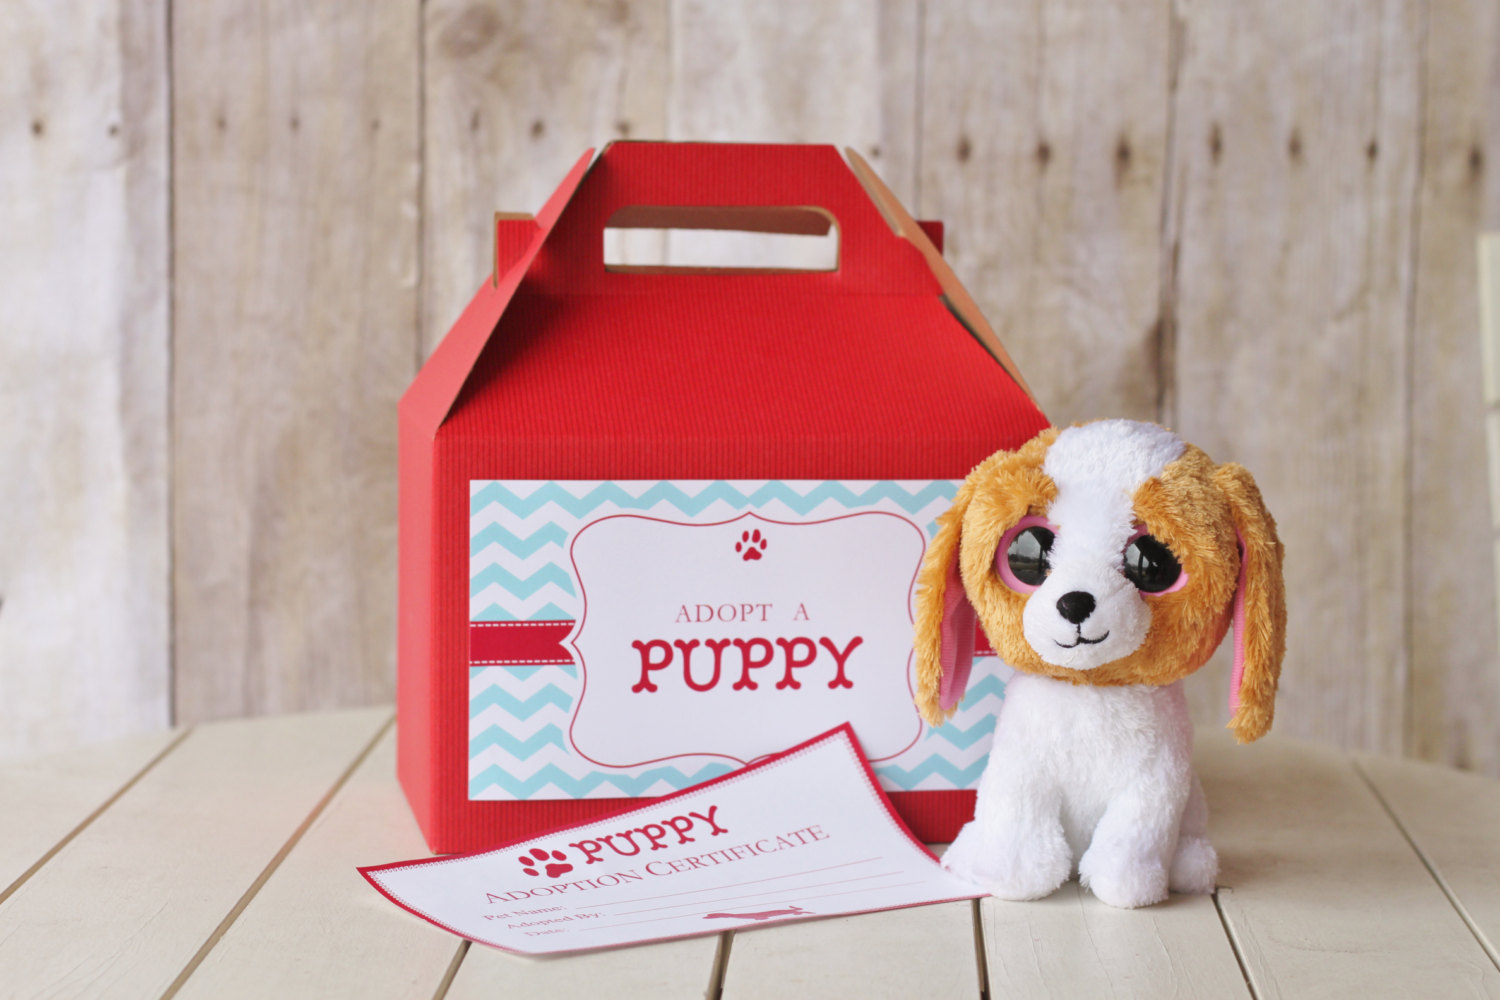 20 Puppy Adoption Boxes And Certificates The Homespun Hostess